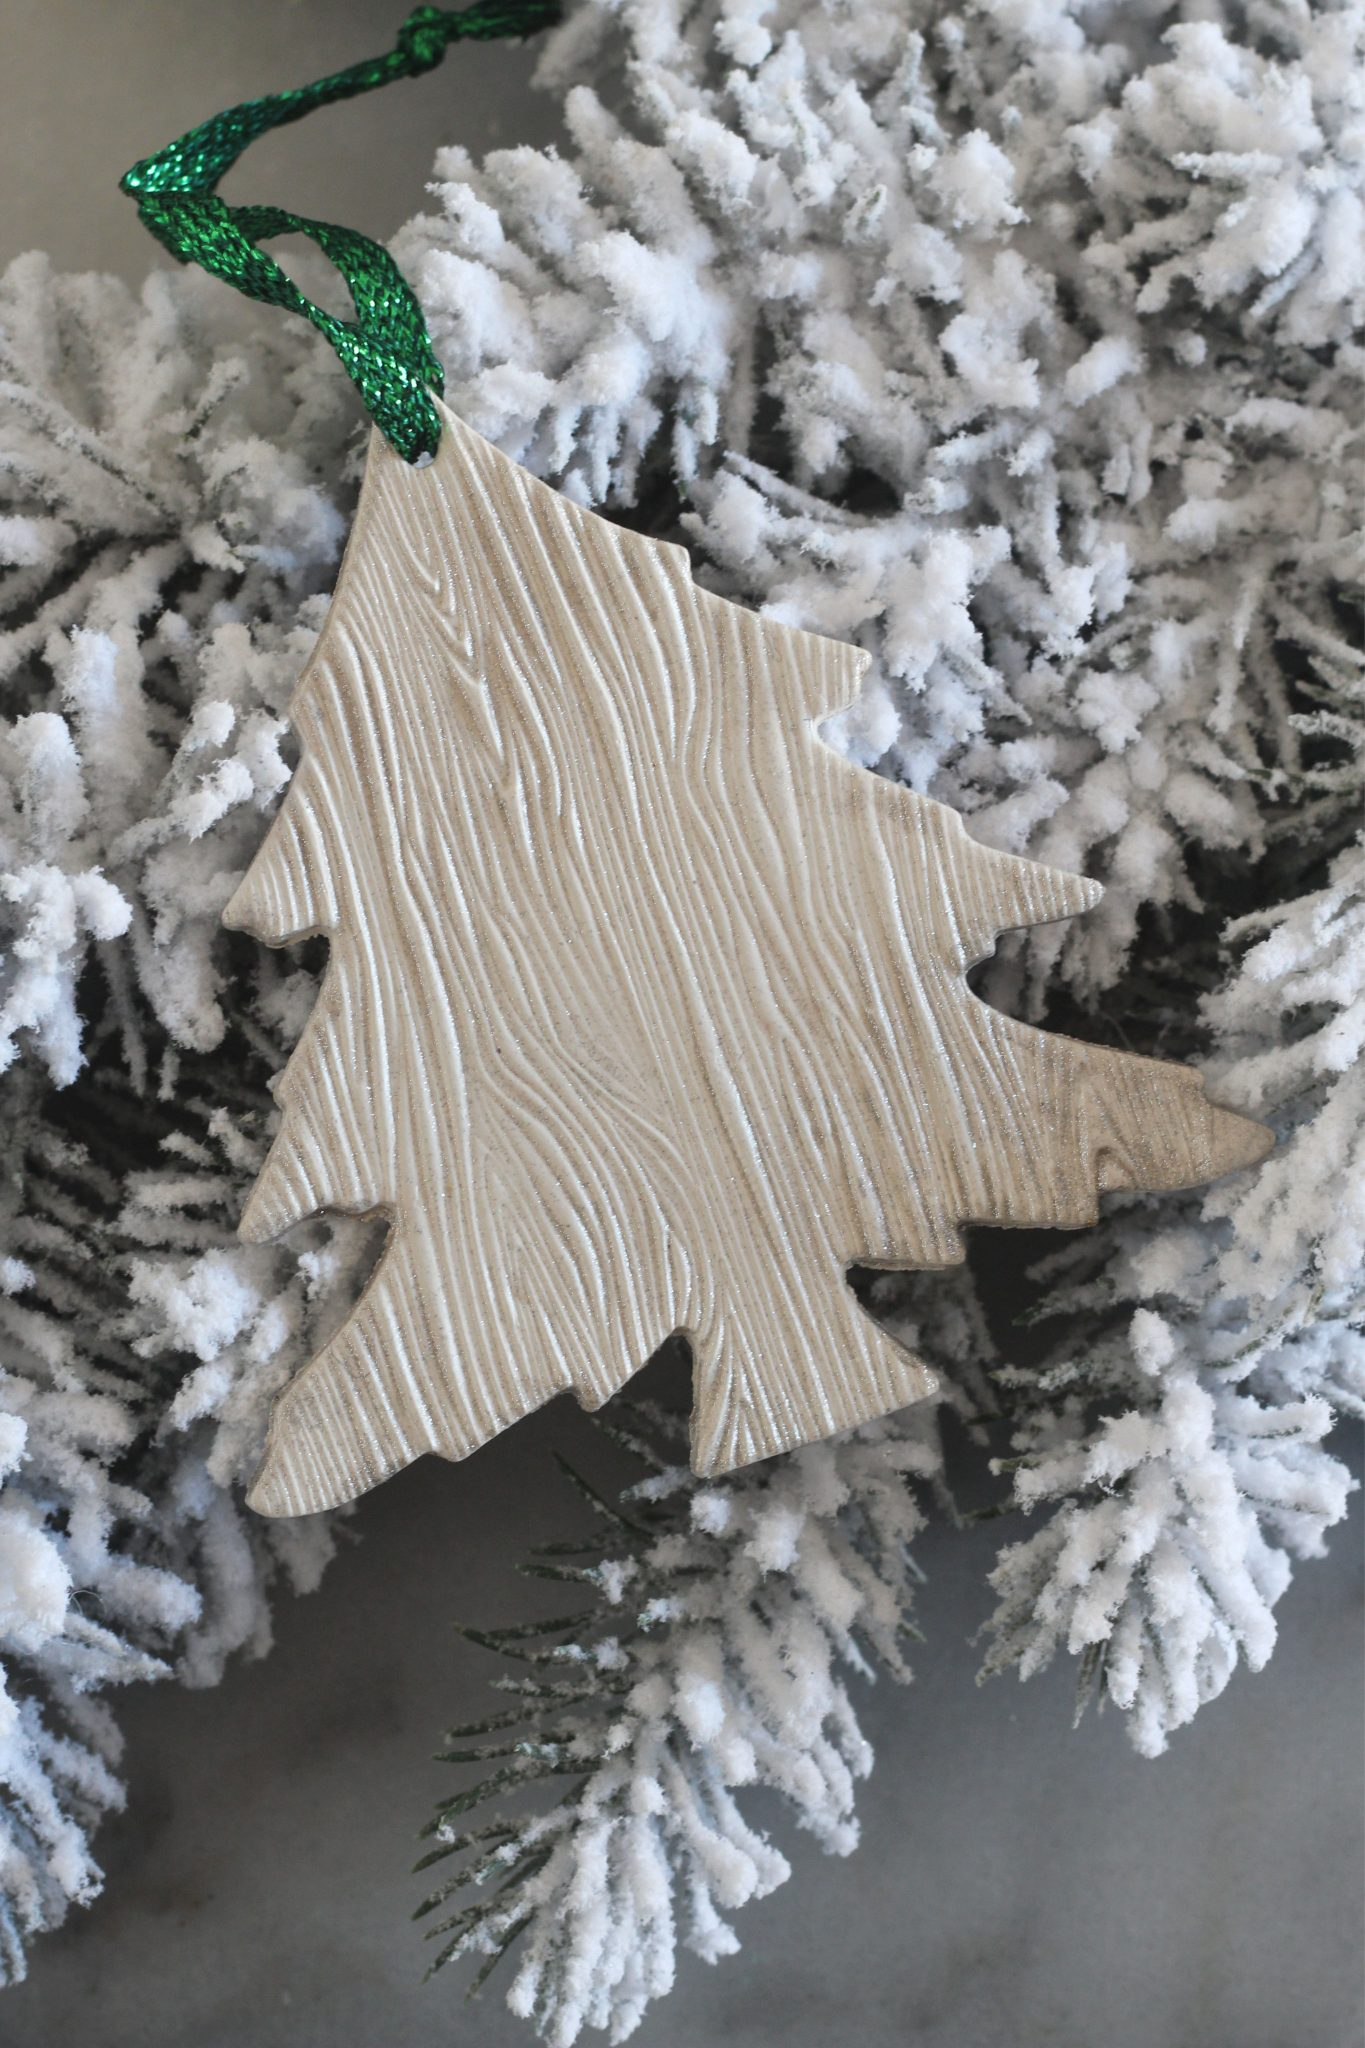 Woodgrain tree ornaments made from air-dry clay.